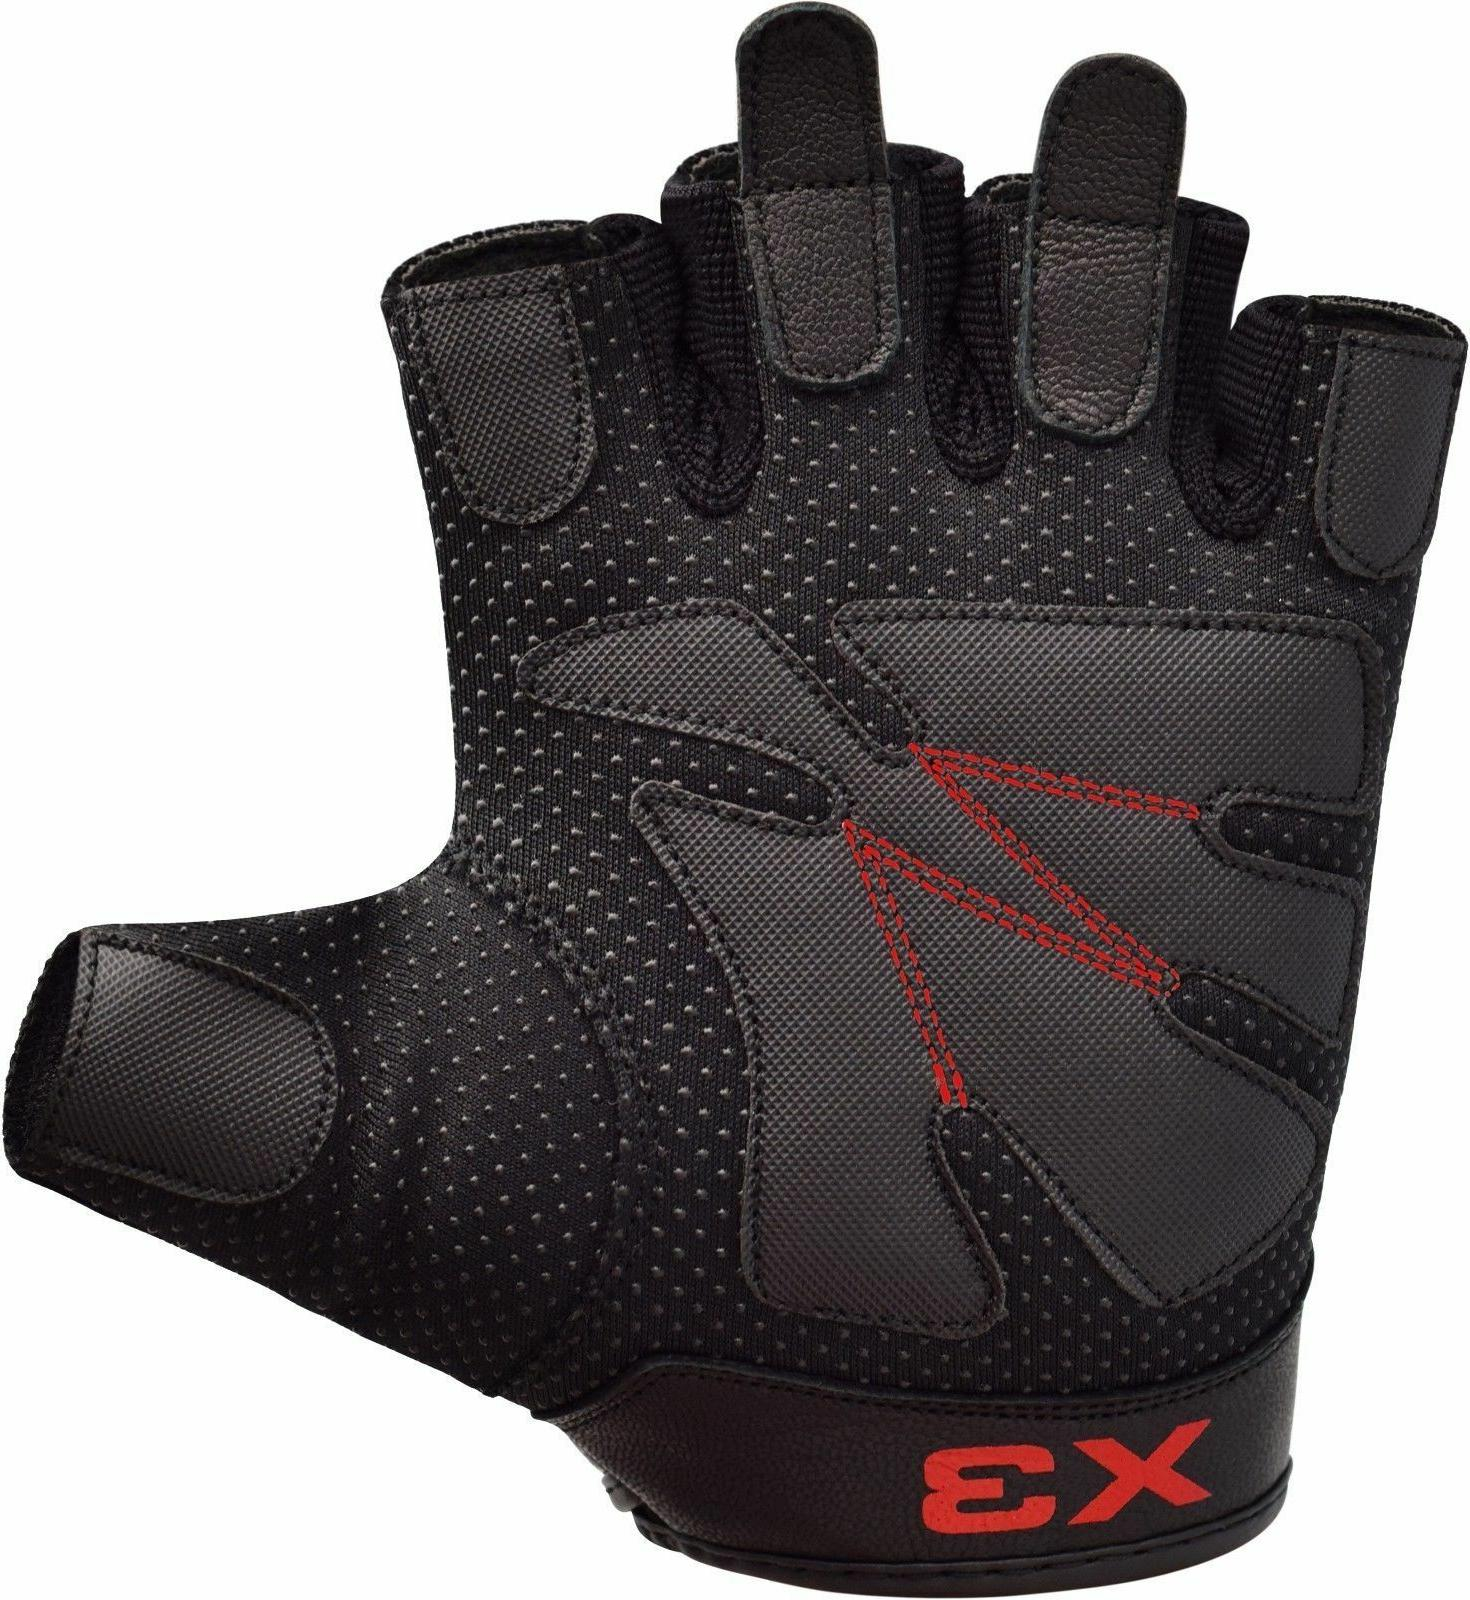 RDX Weight lifting Gloves Gym Fitness Training Bodybuilding Workout